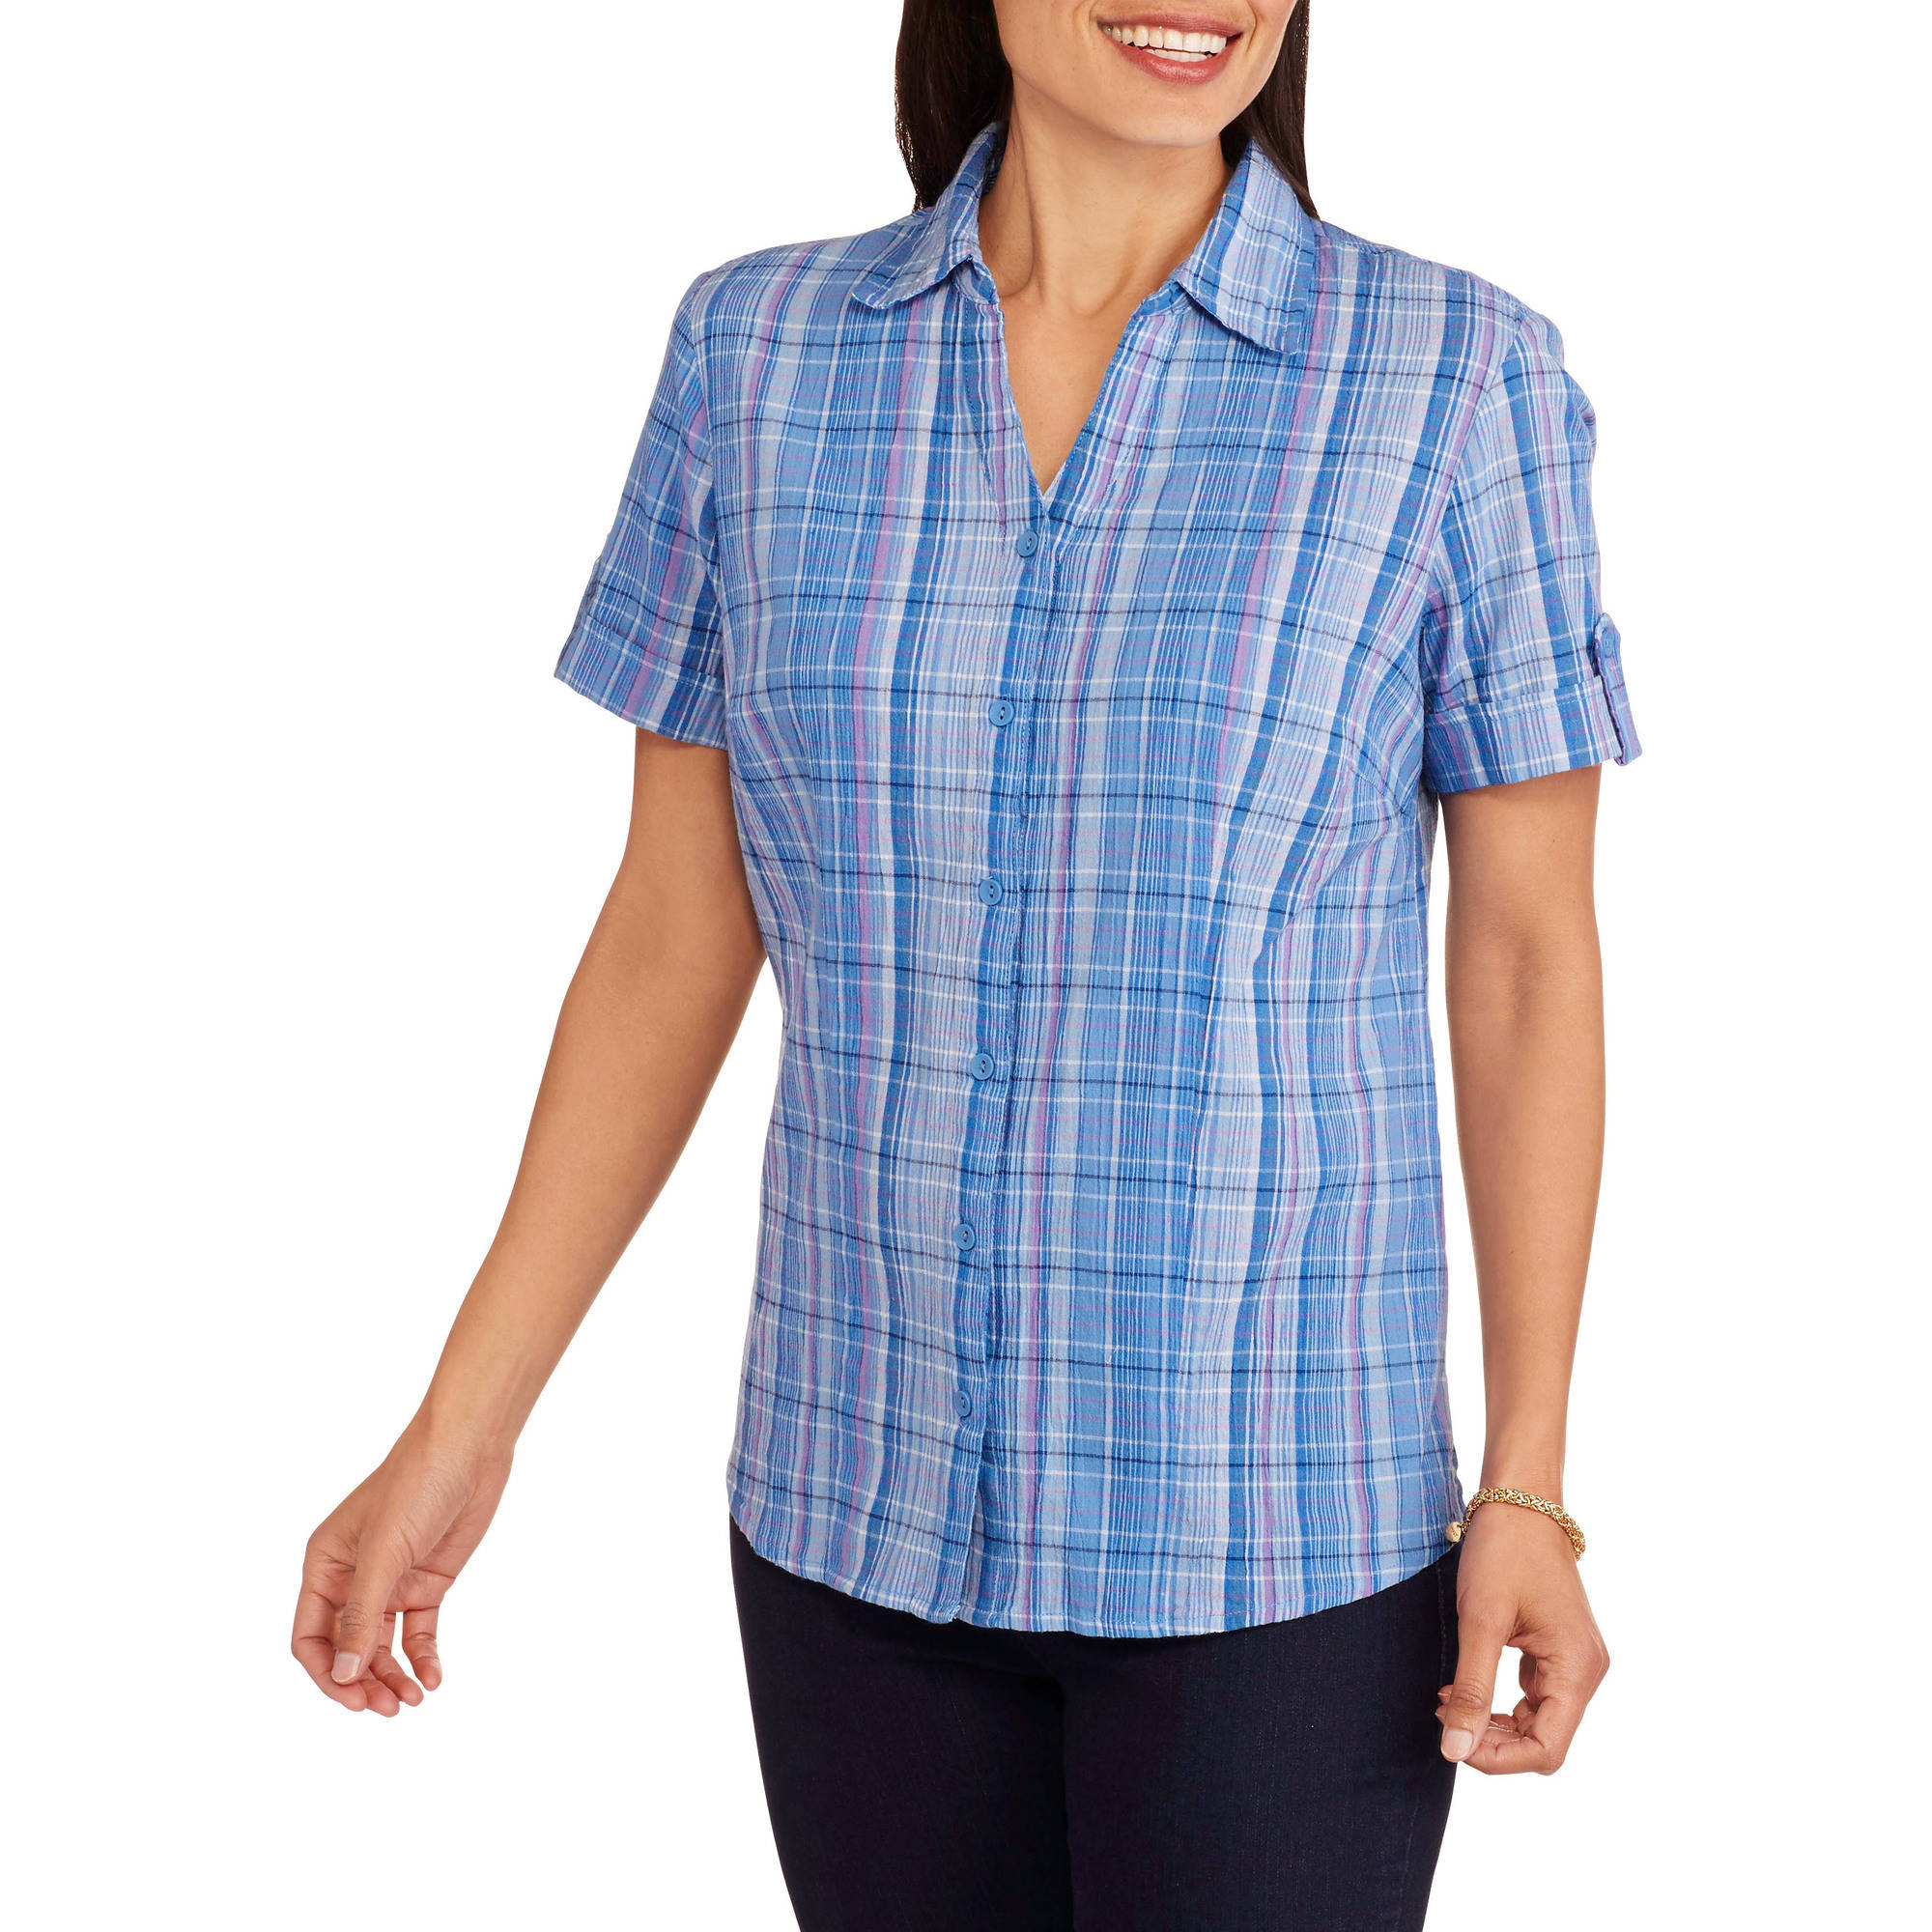 White Stag Women's Crinkle Woven Camp Shirt